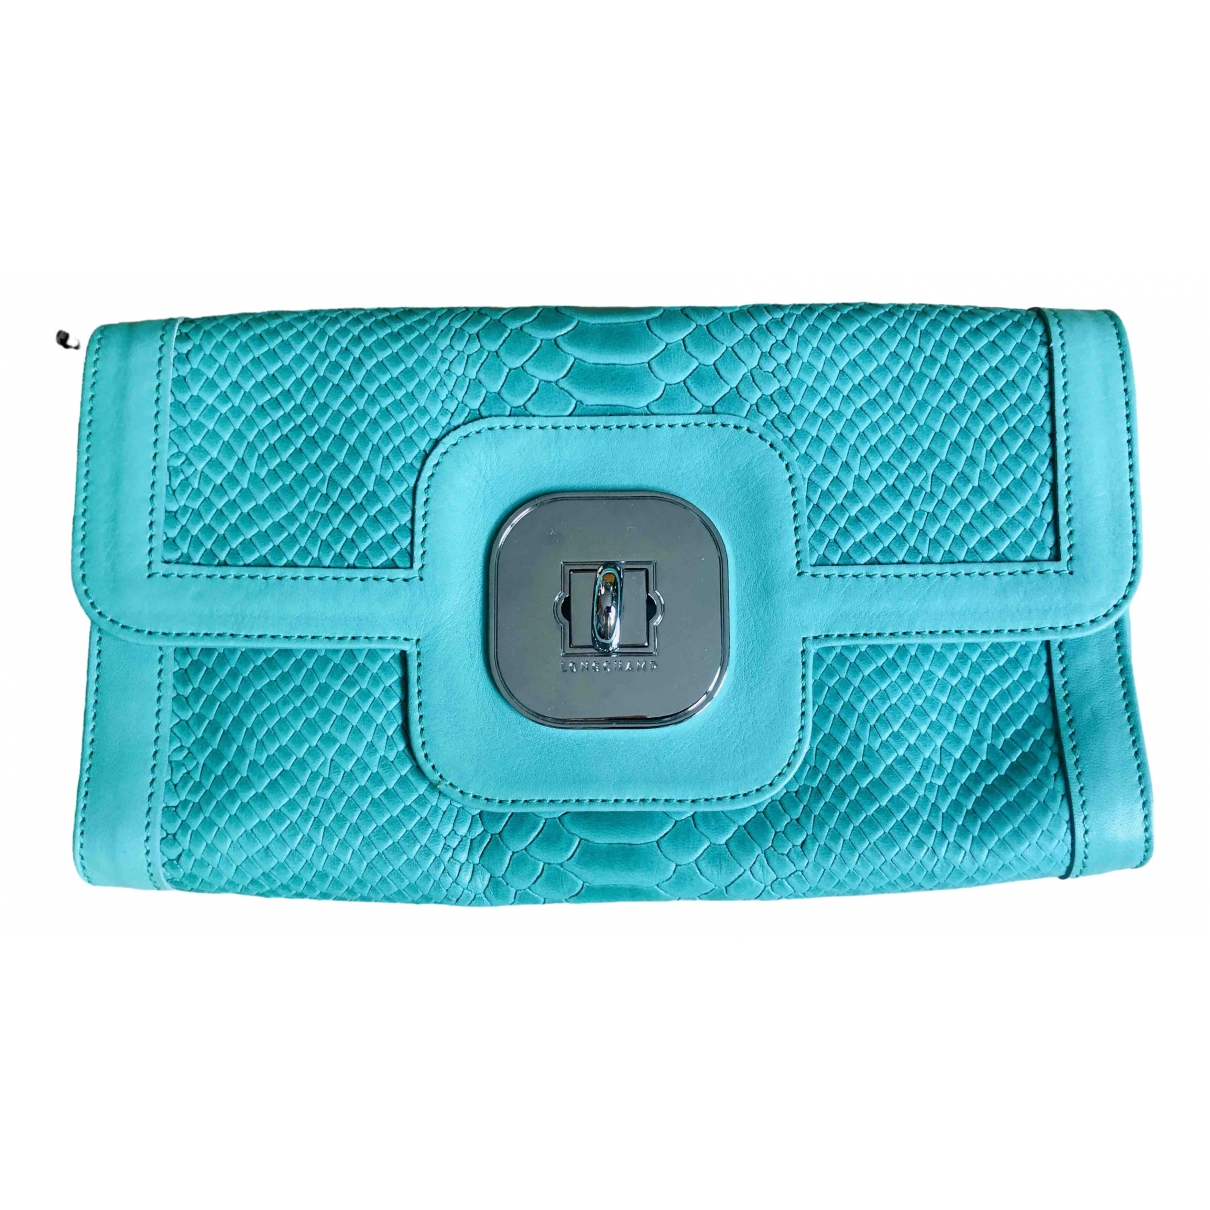 Longchamp Kate Moss Green Leather Clutch bag for Women \N